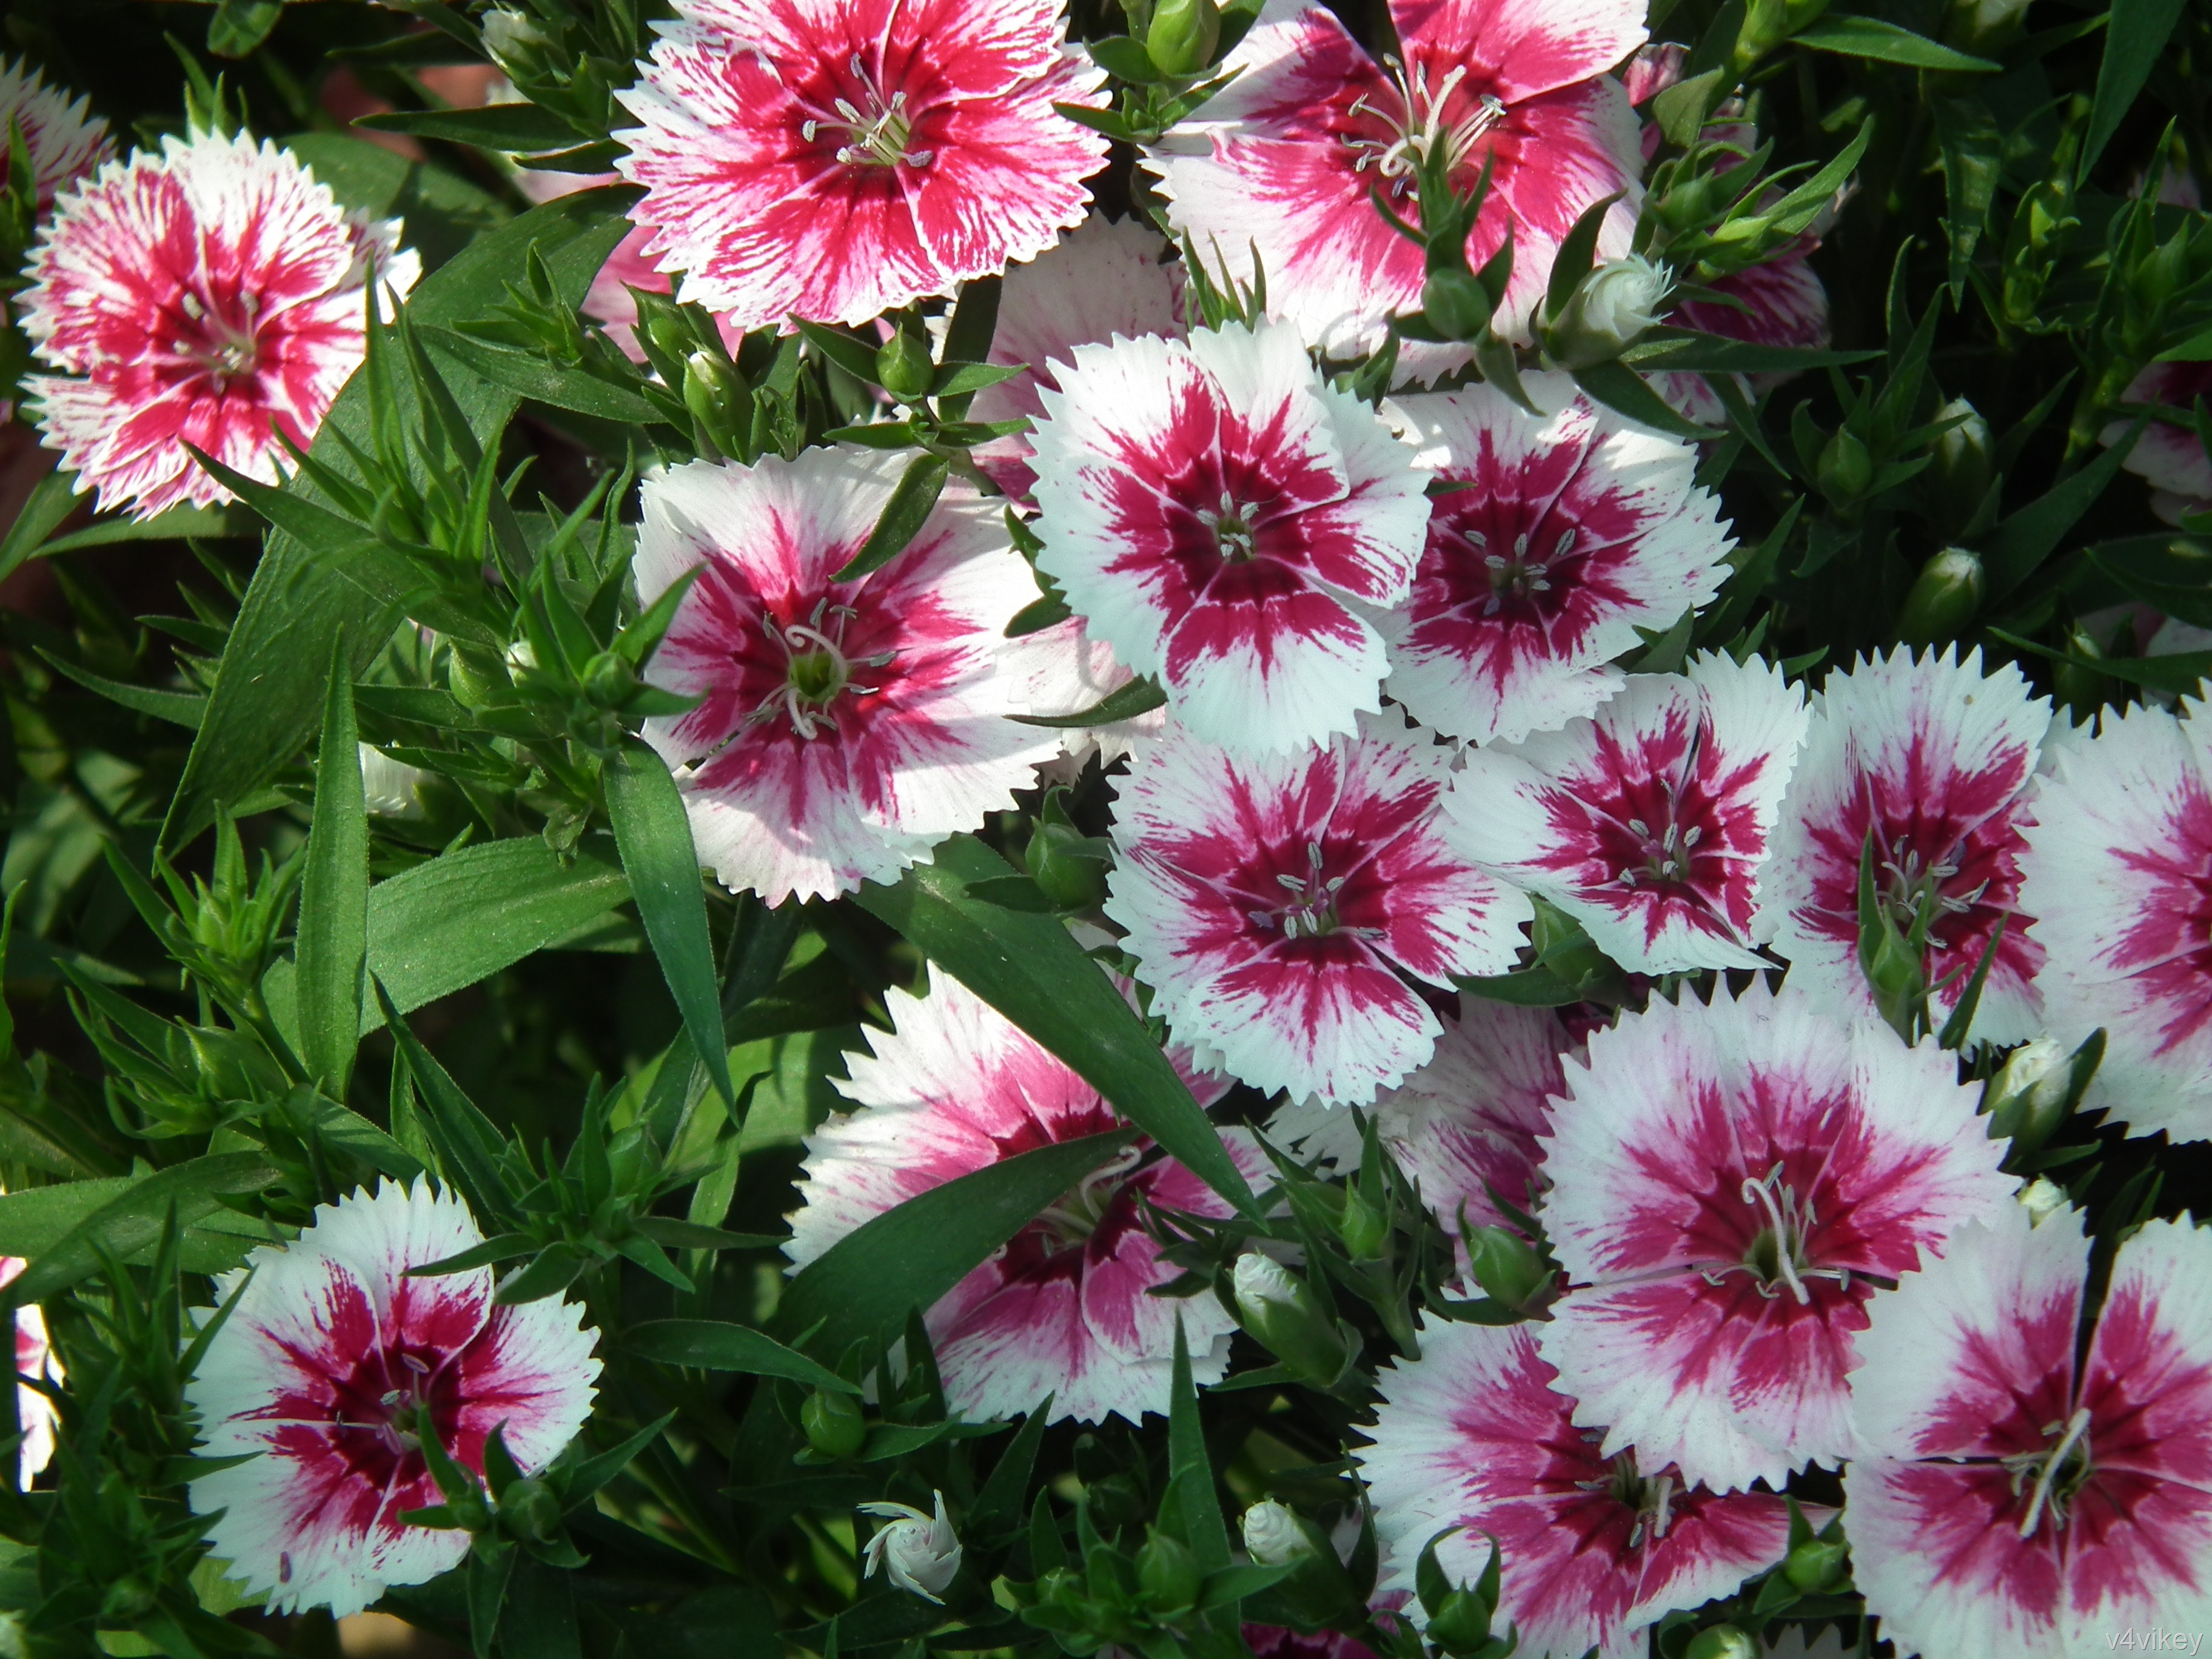 Beautiful Nature Pink White Color Dianthus Flower Images 3648x2736